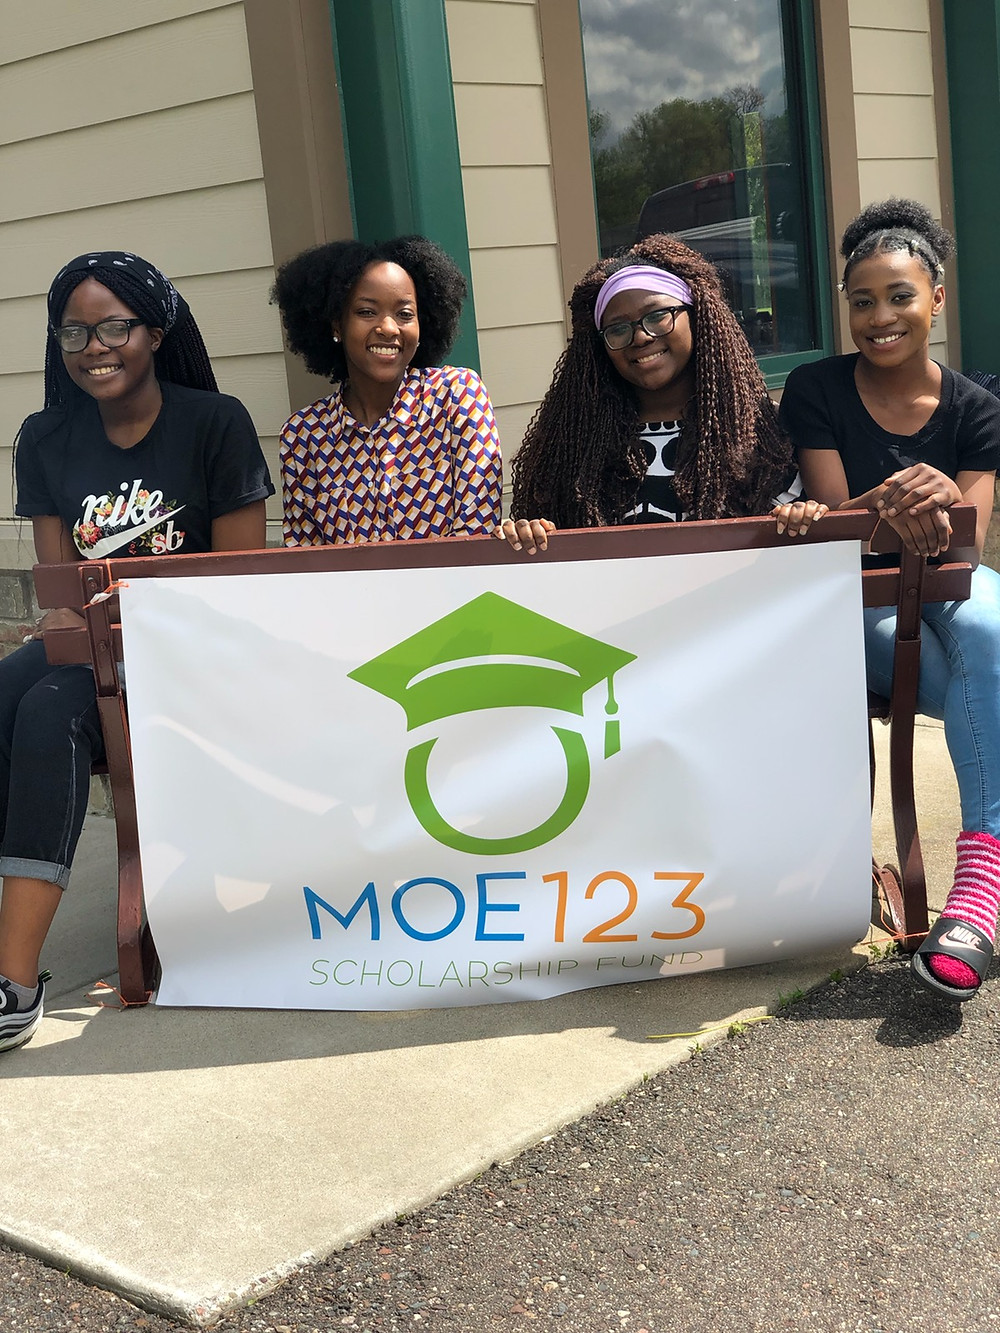 2019 Moe123 Scholars pose for a photo at the 2nd Annual Moe123 Community Picnic